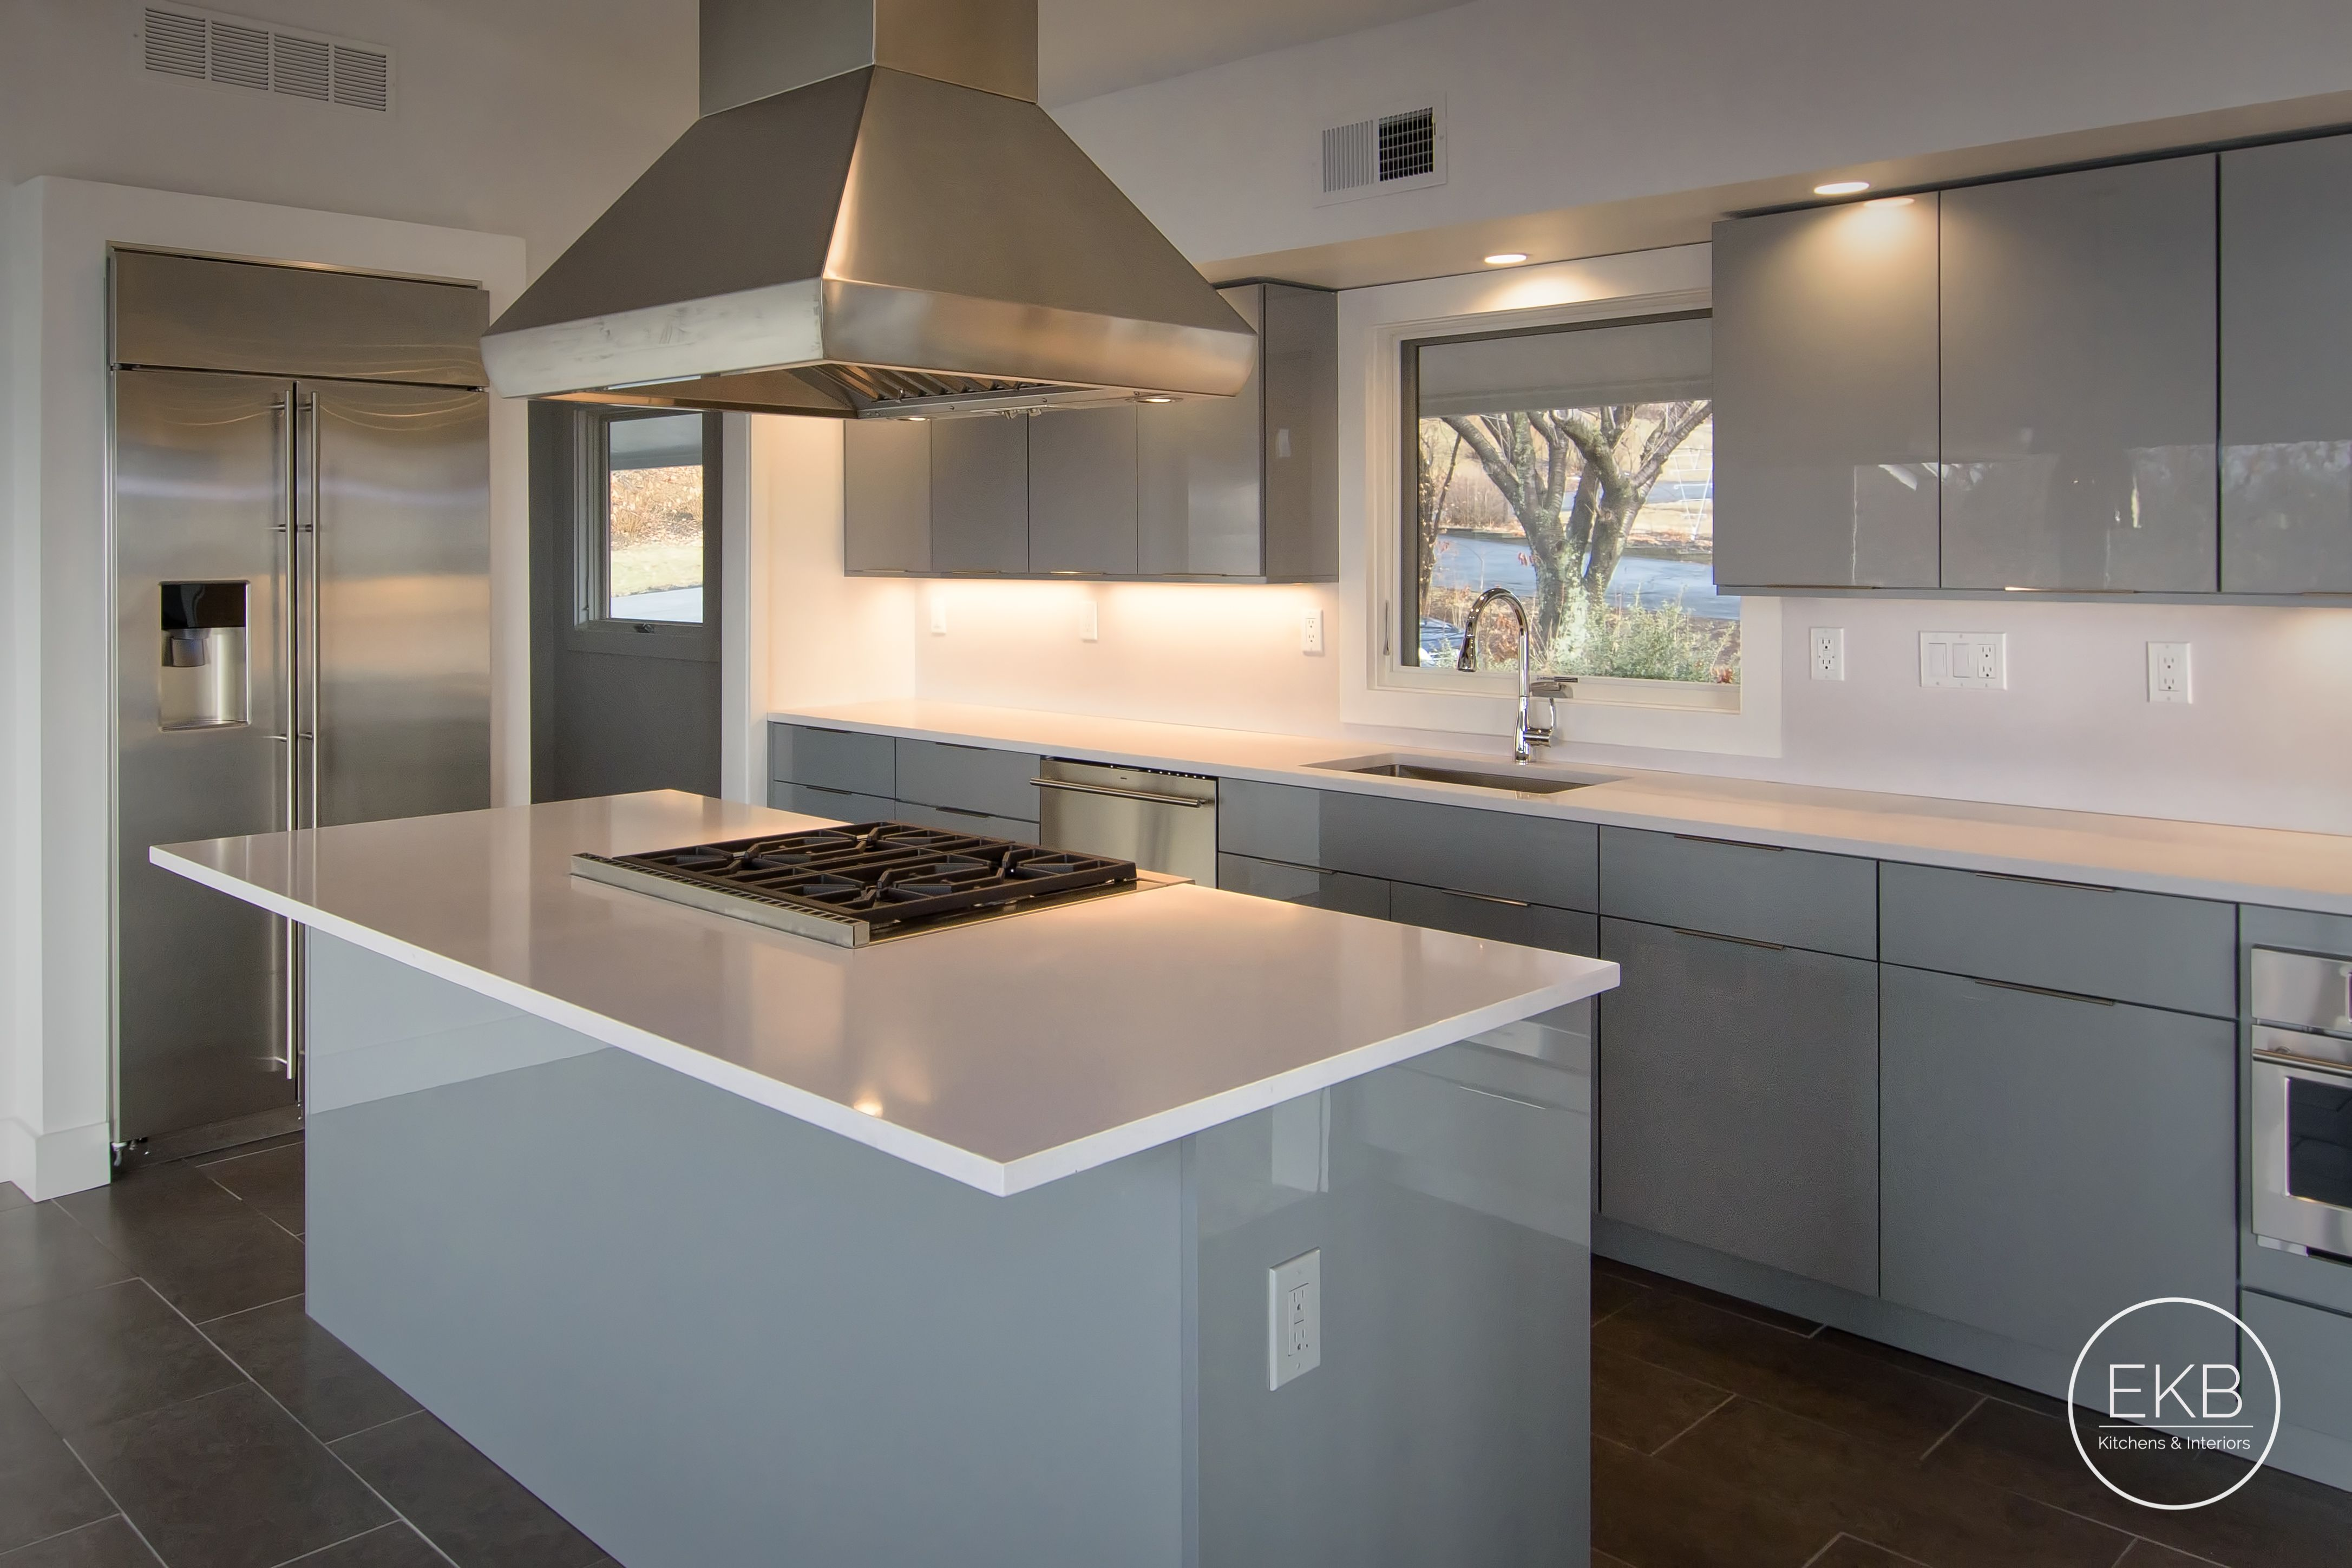 Eclipse Frameless Cabinetry Metropolitan Door Style In Gabbiano And White North Silestone Coun Kitchen Design Kitchen Remodel Installing Kitchen Cabinets